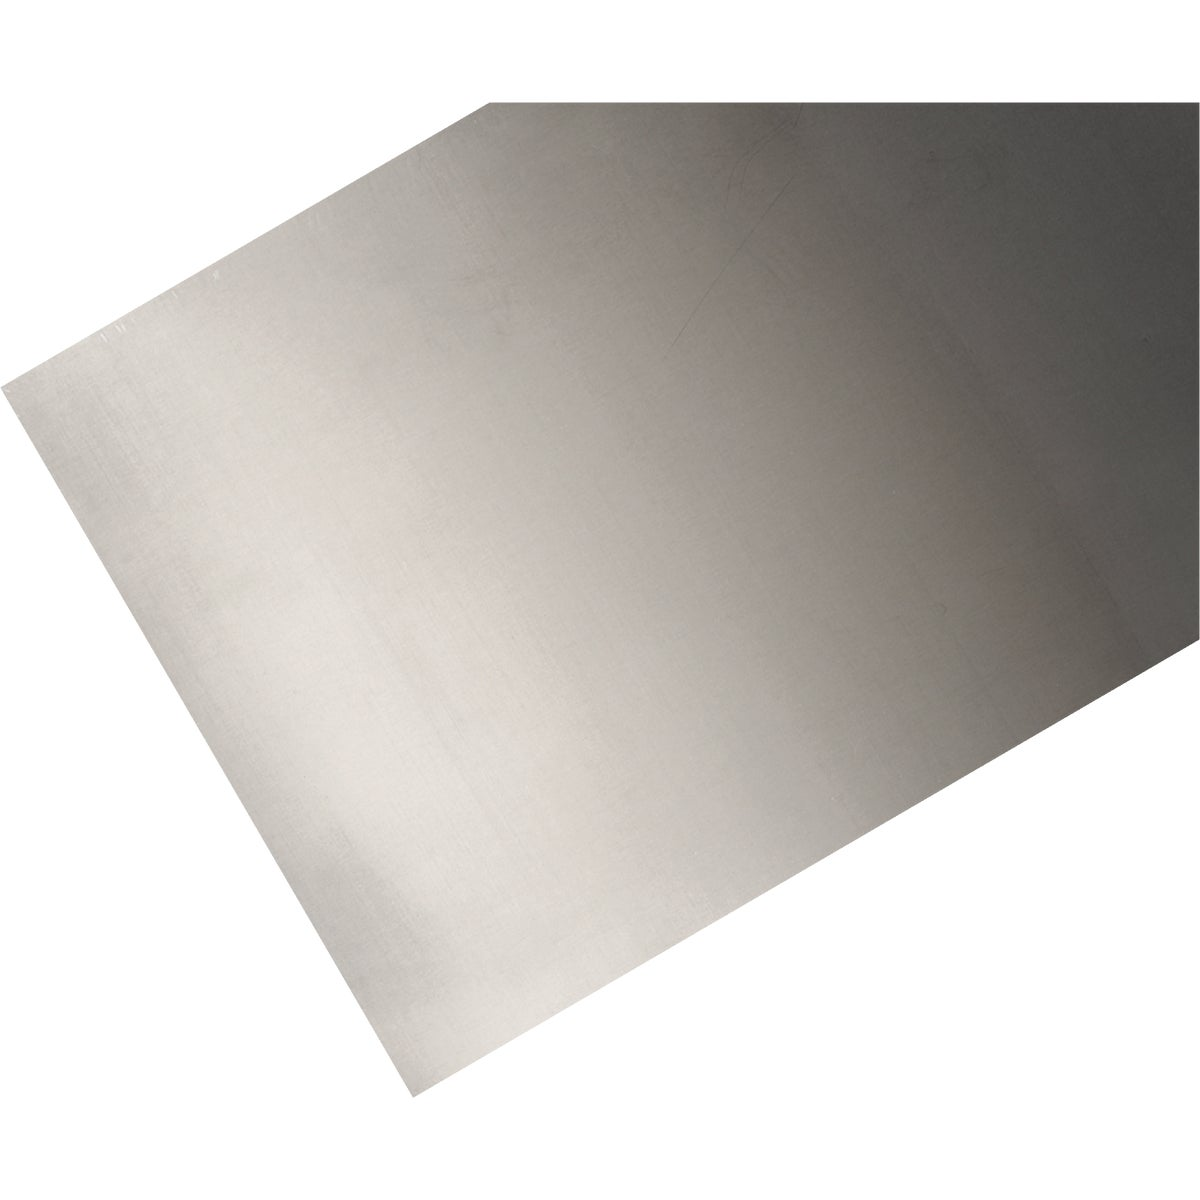 3X3 GALV STEEL SHEET - 57851 by M D Building Prod